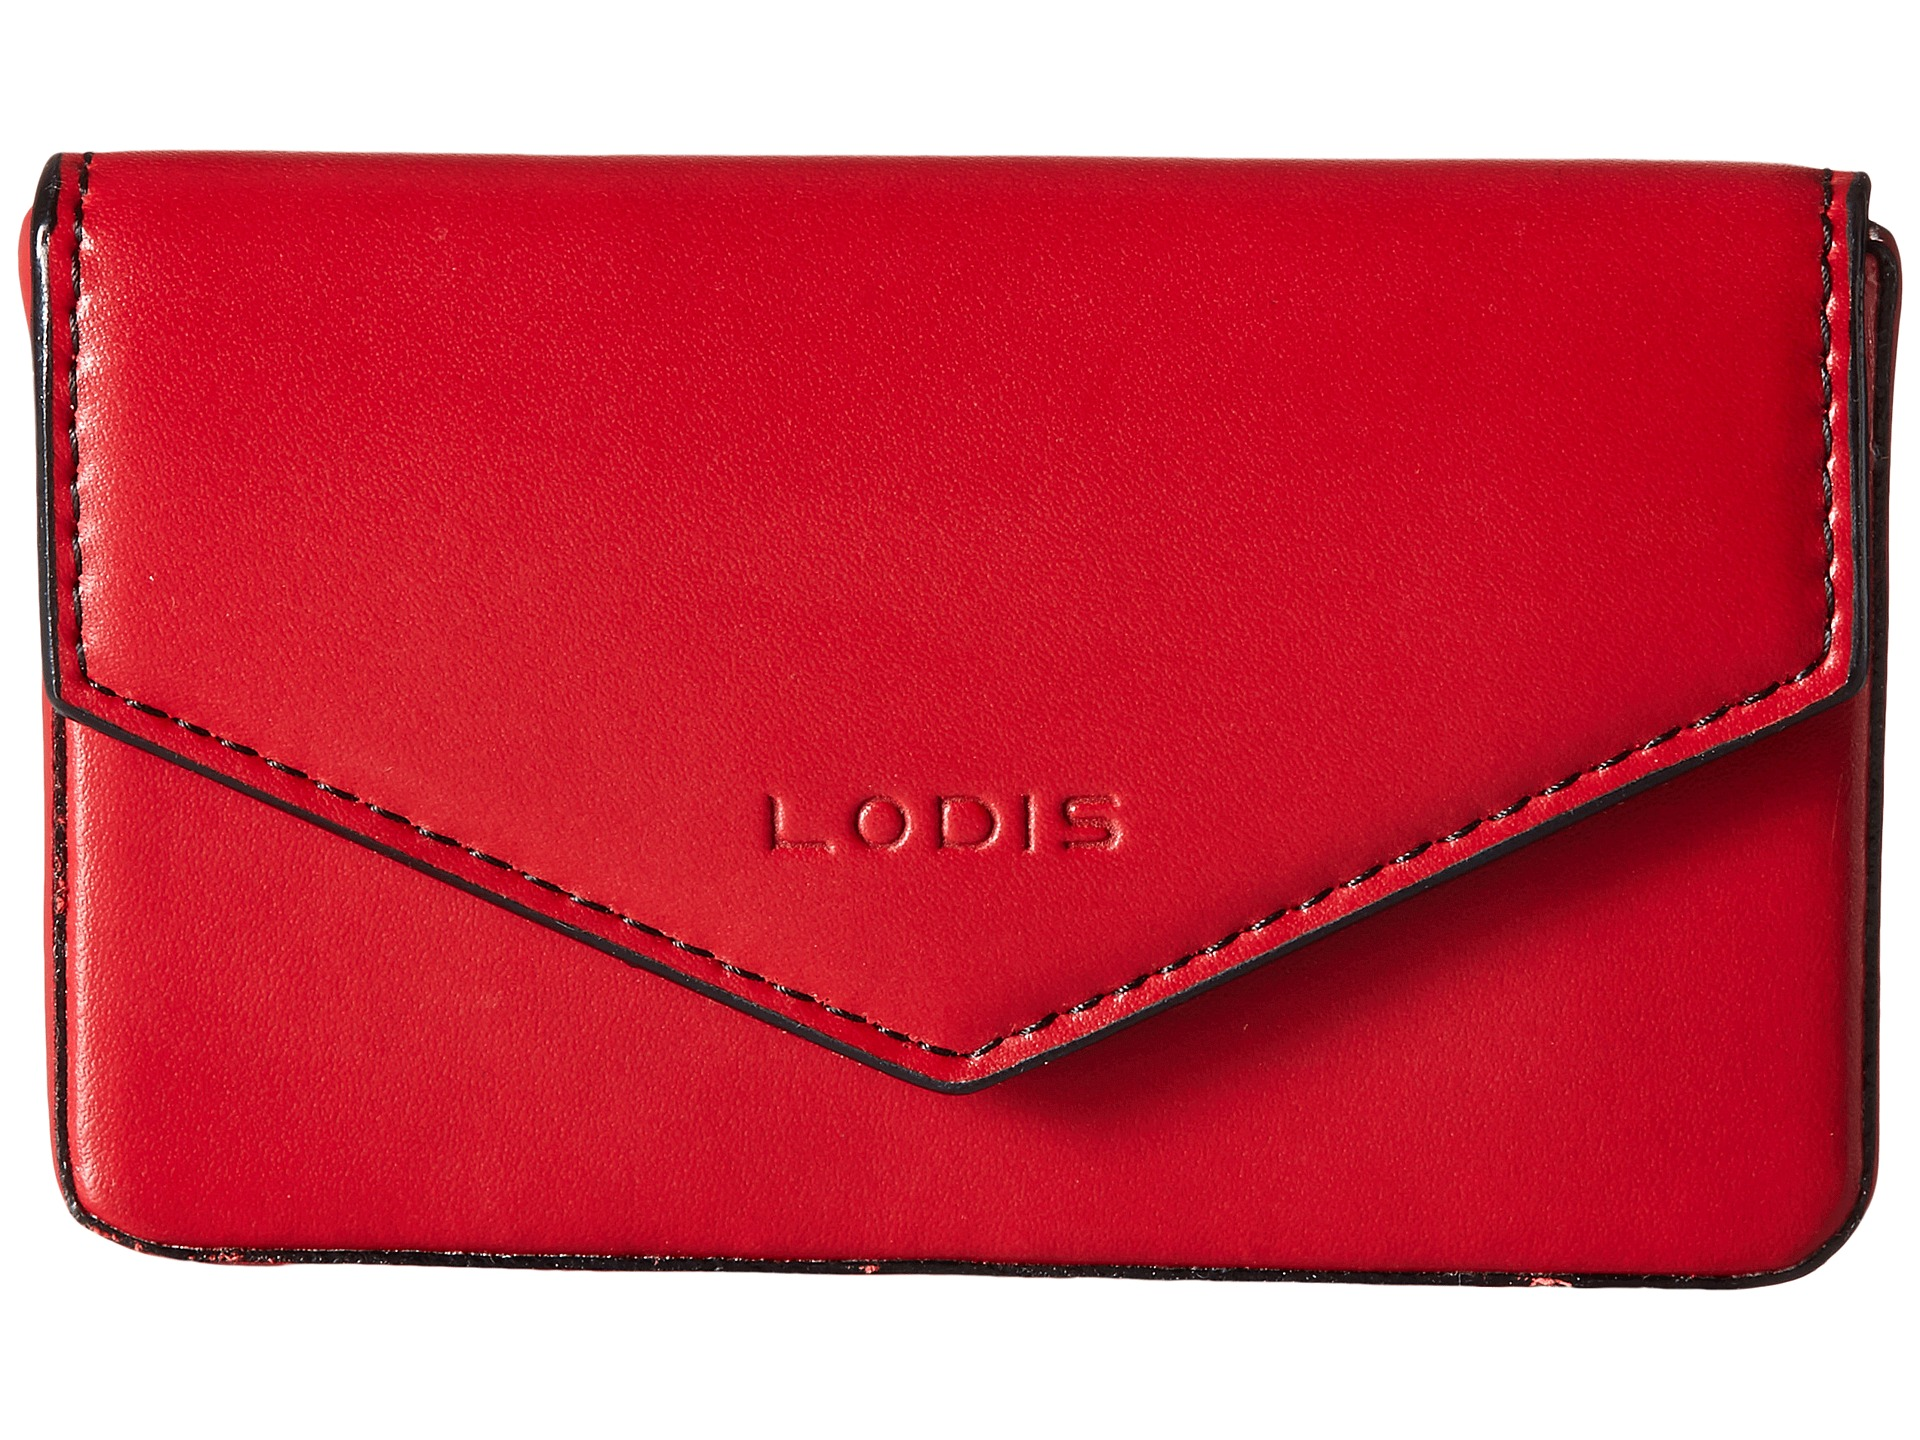 """The name LODIS is a union of the brand's two founding elements: """"LO""""- derived from Loewe of Spain, Madrid's most exclusive leather goods house; and -""""DIS"""", the initials of Daniel Isaac Segat. In , these partners' joint vision brought European luxury-level quality and expert craftsmanship to America under the name Lodis."""